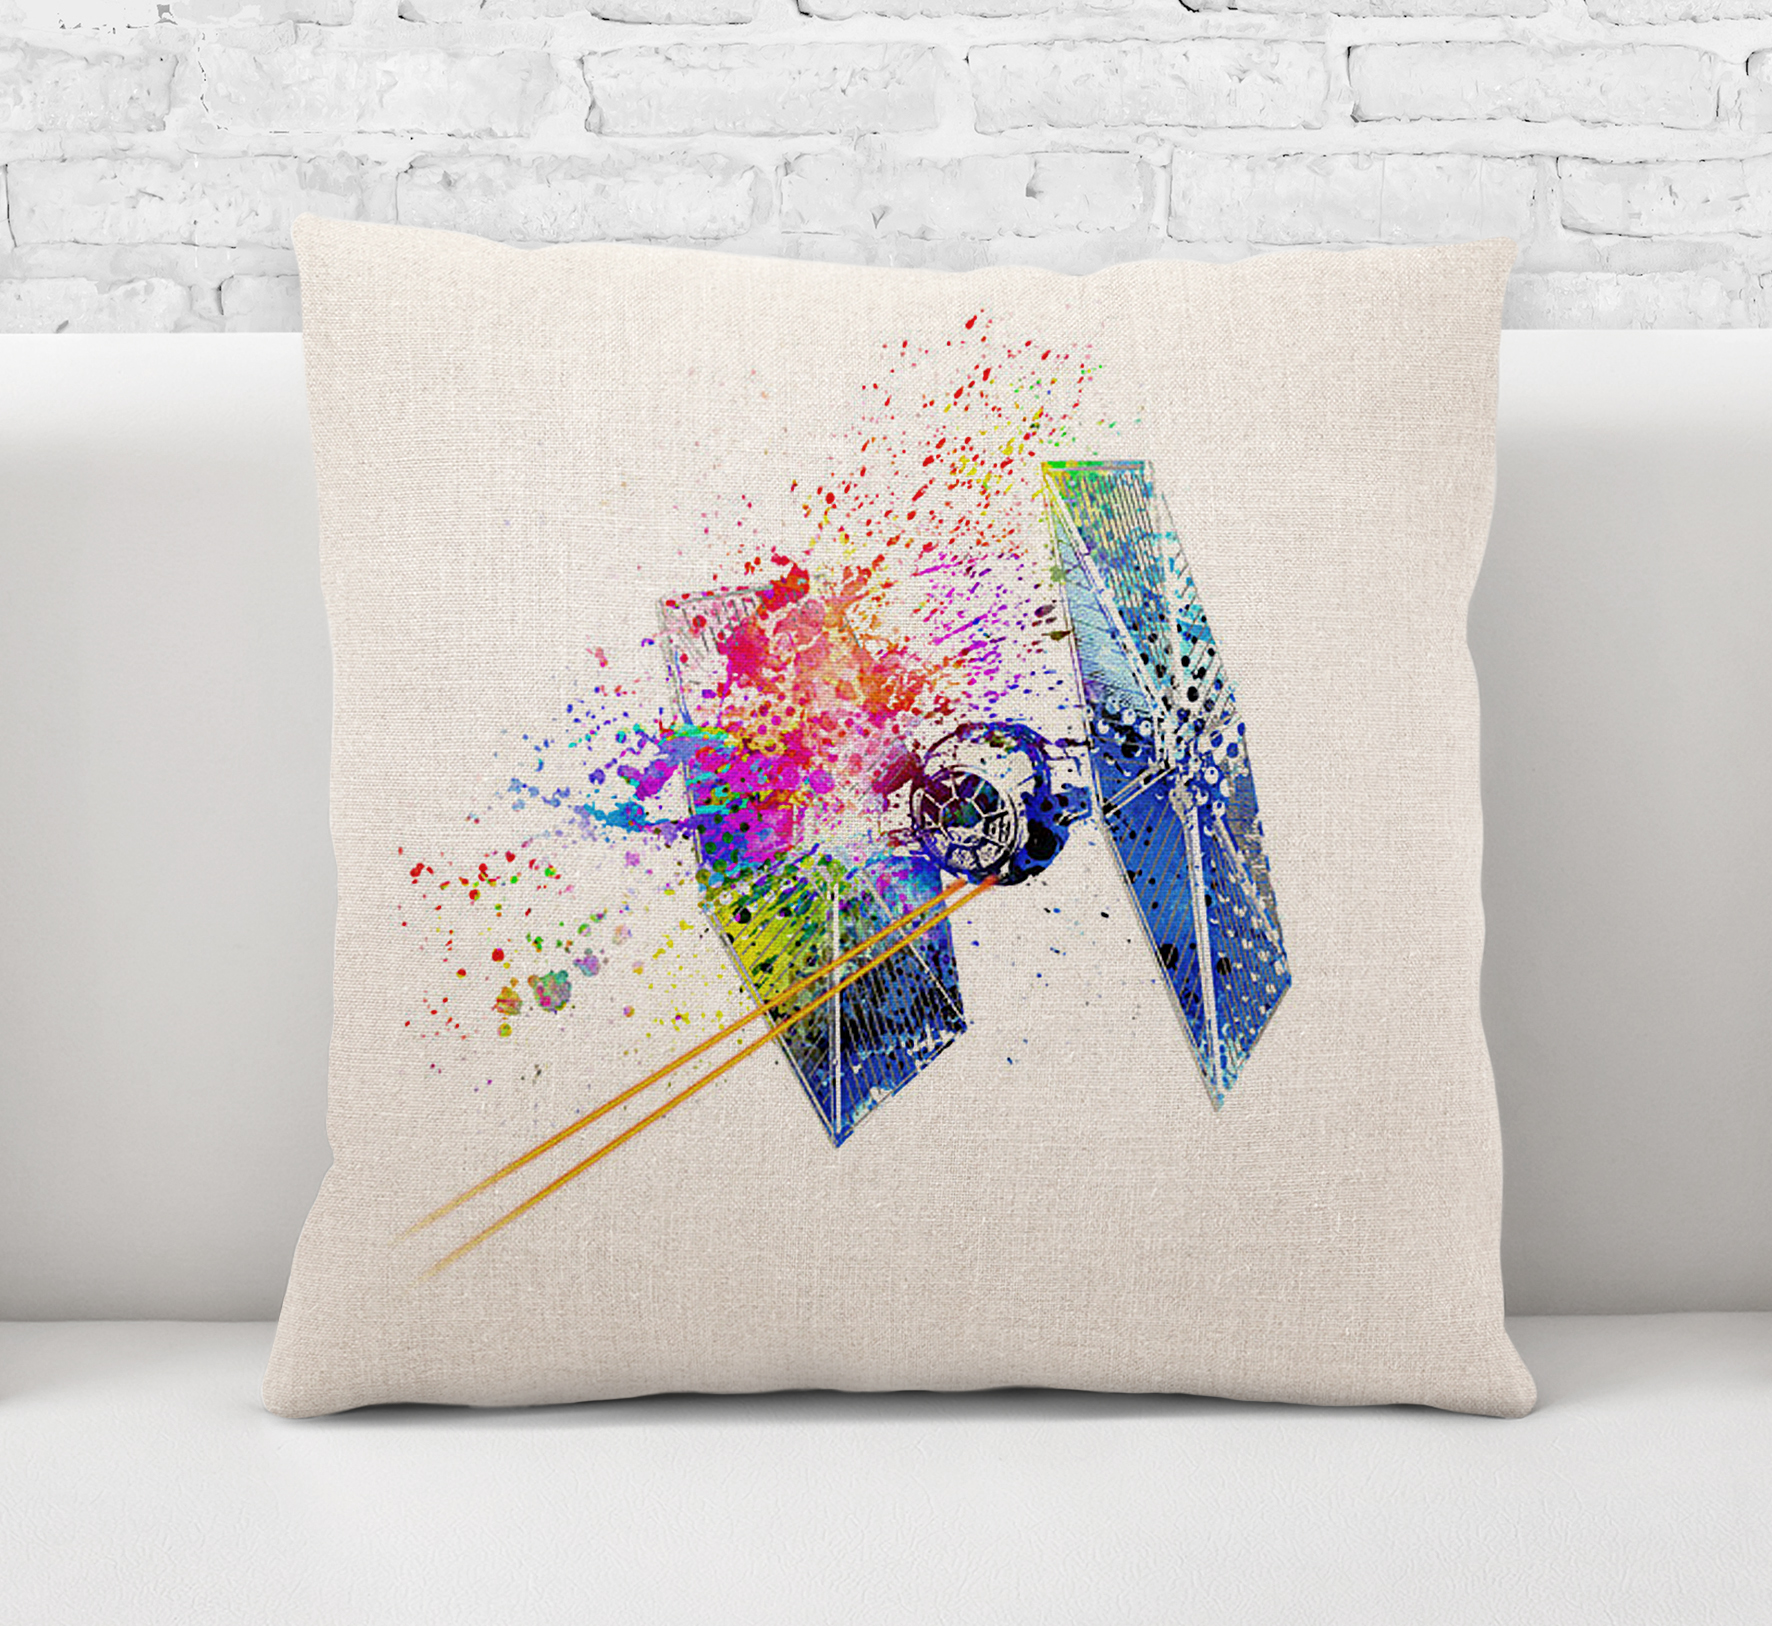 Throw Pillow CaseCushion CoverTie Fighter Star Wars Watercolour Painting Art0565